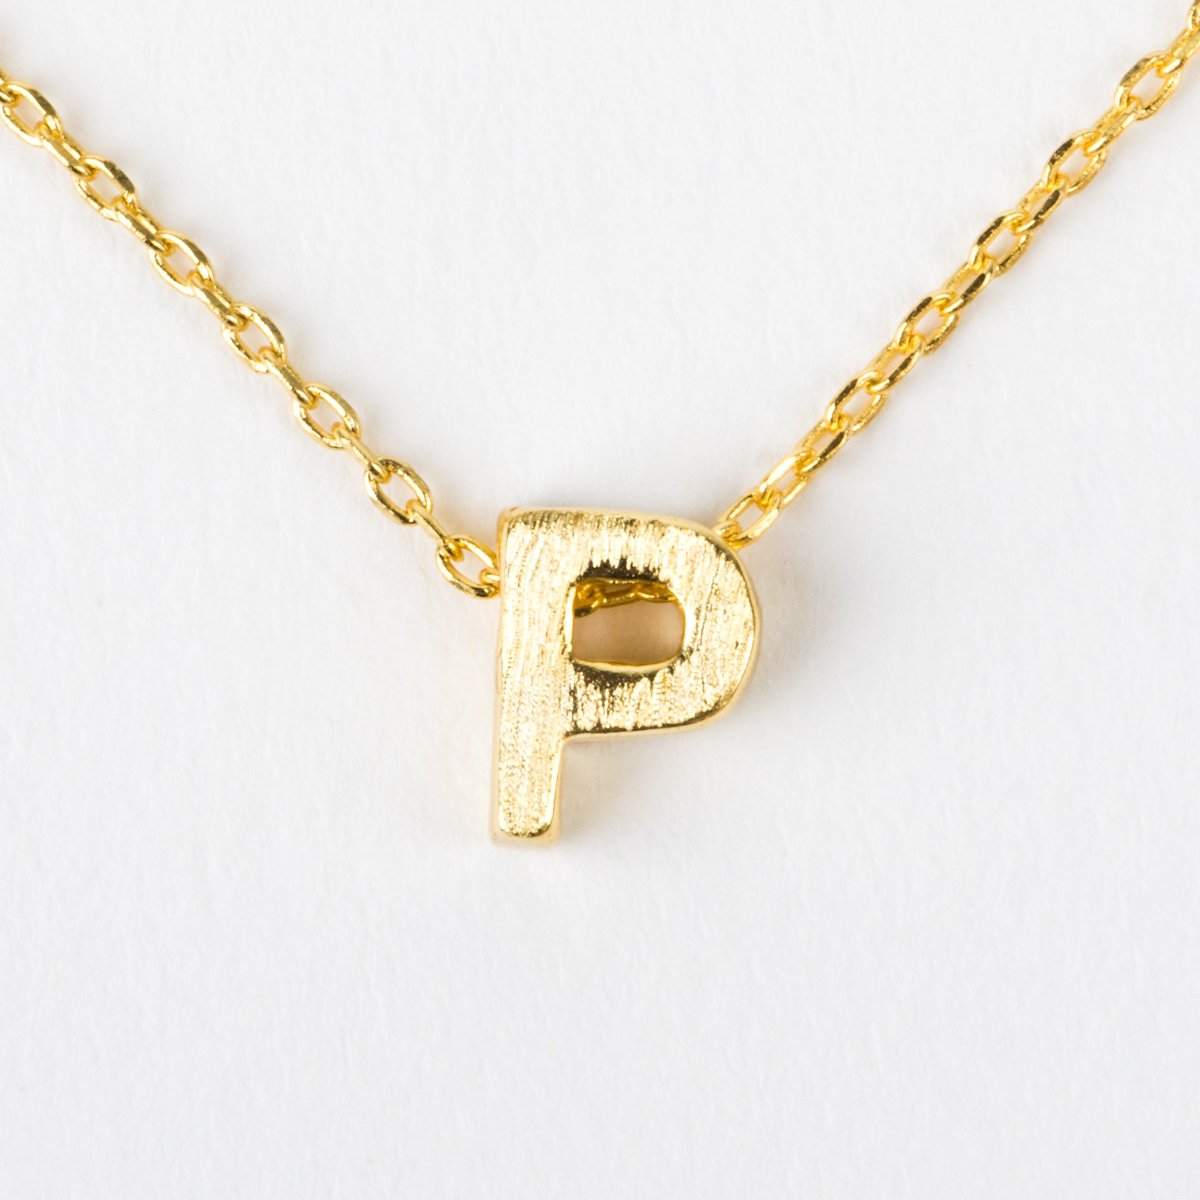 p initial block letter gold necklace necklaces melinda maria local eclectic